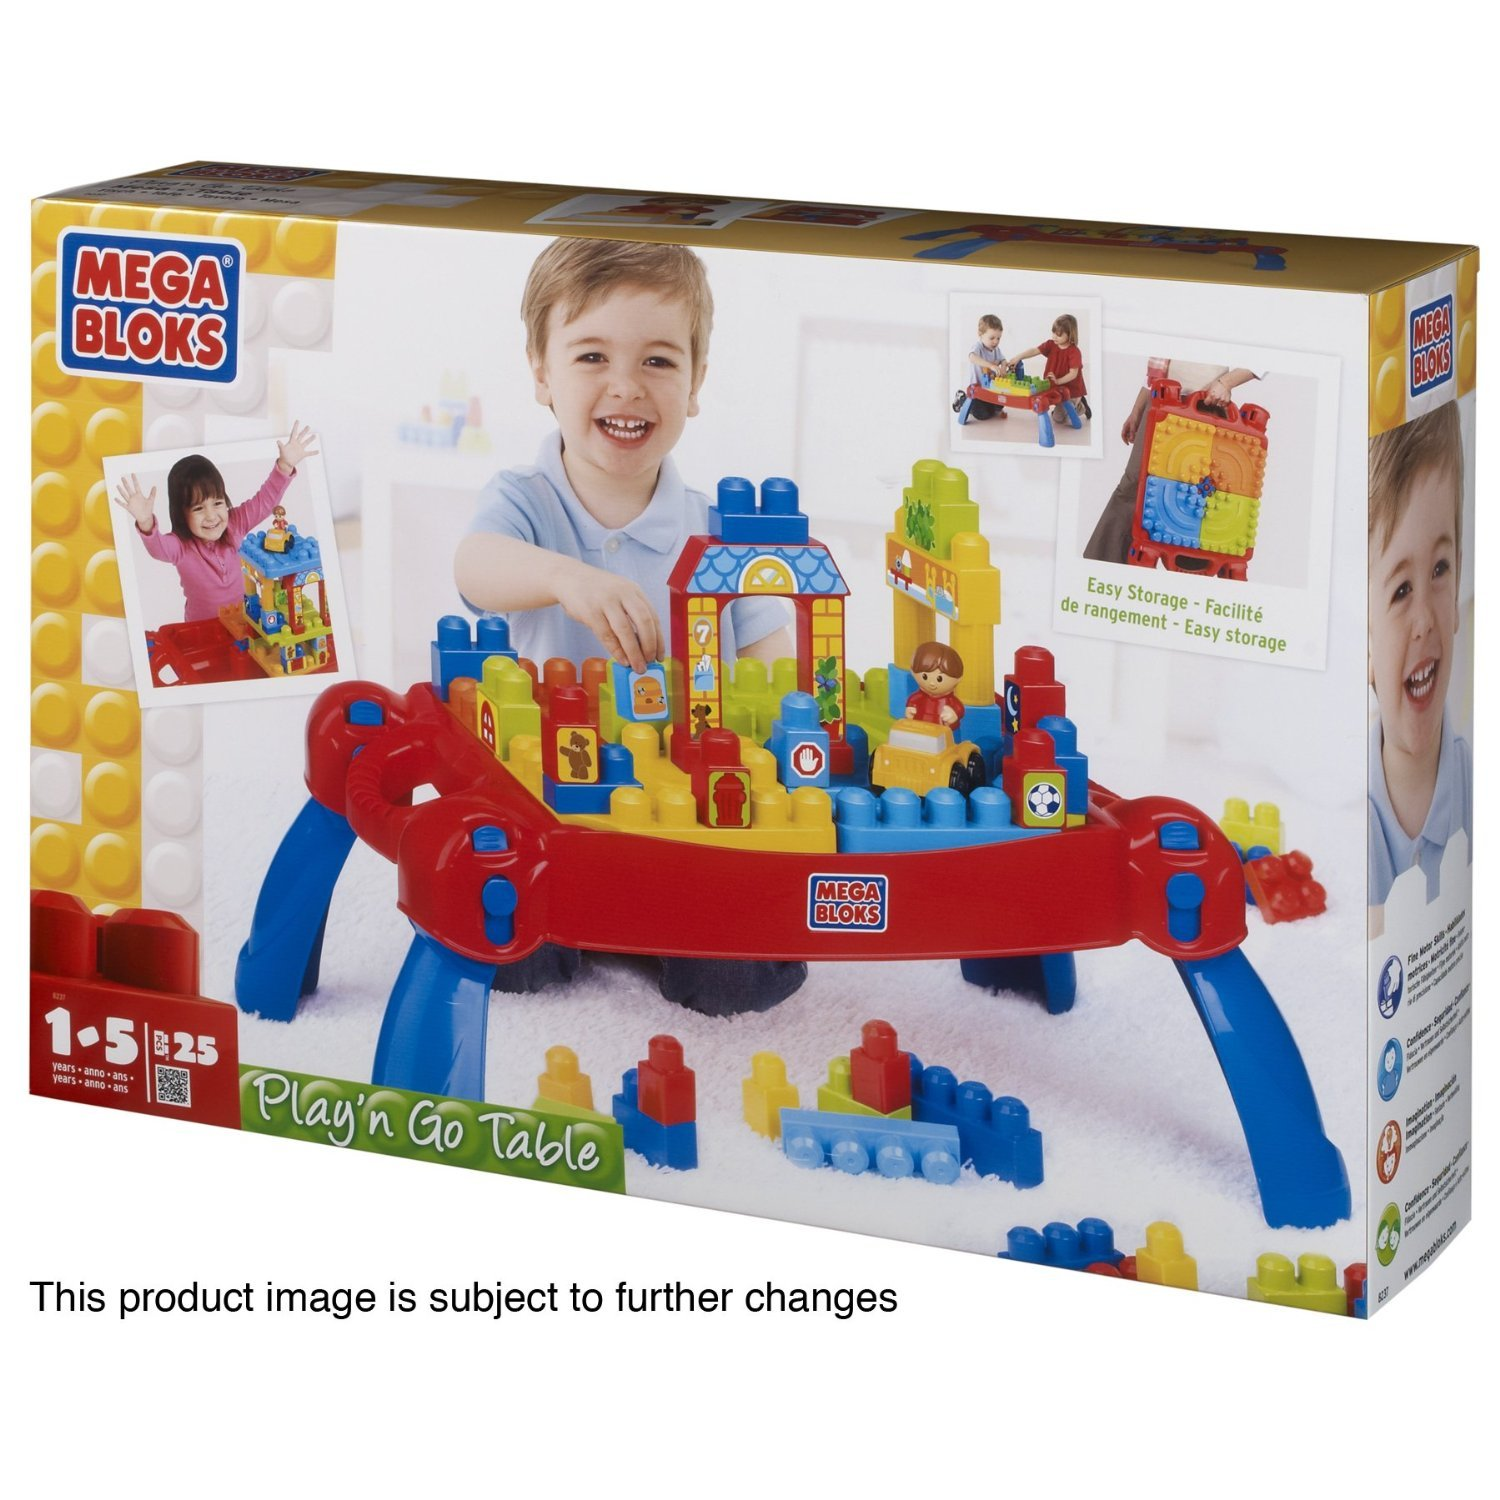 Mega Blocks Play n Go Table